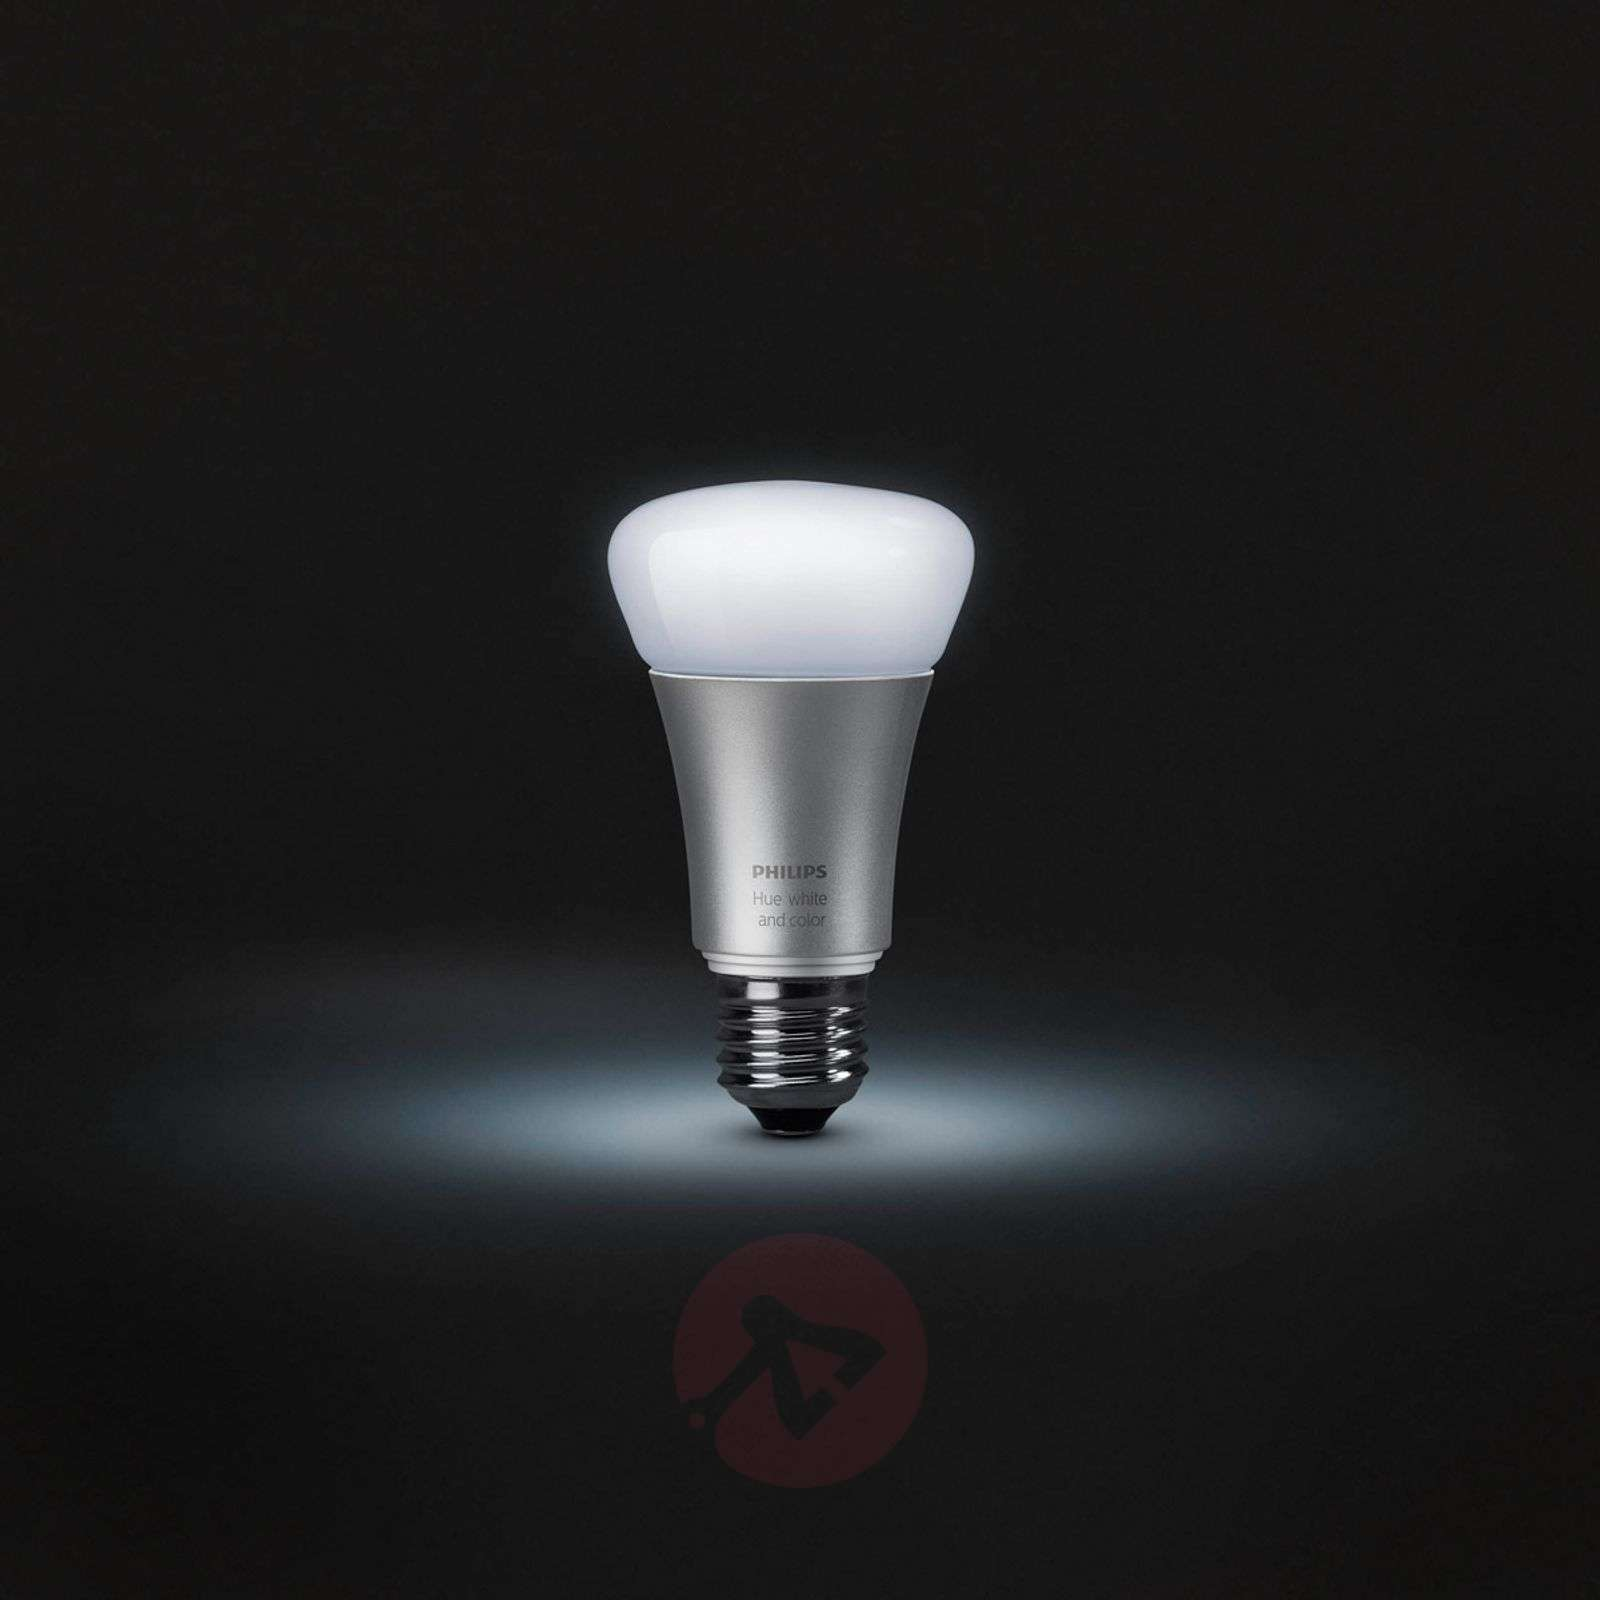 Żarówka Philips Hue White + Color Ambiance E27 10W-7531677-01